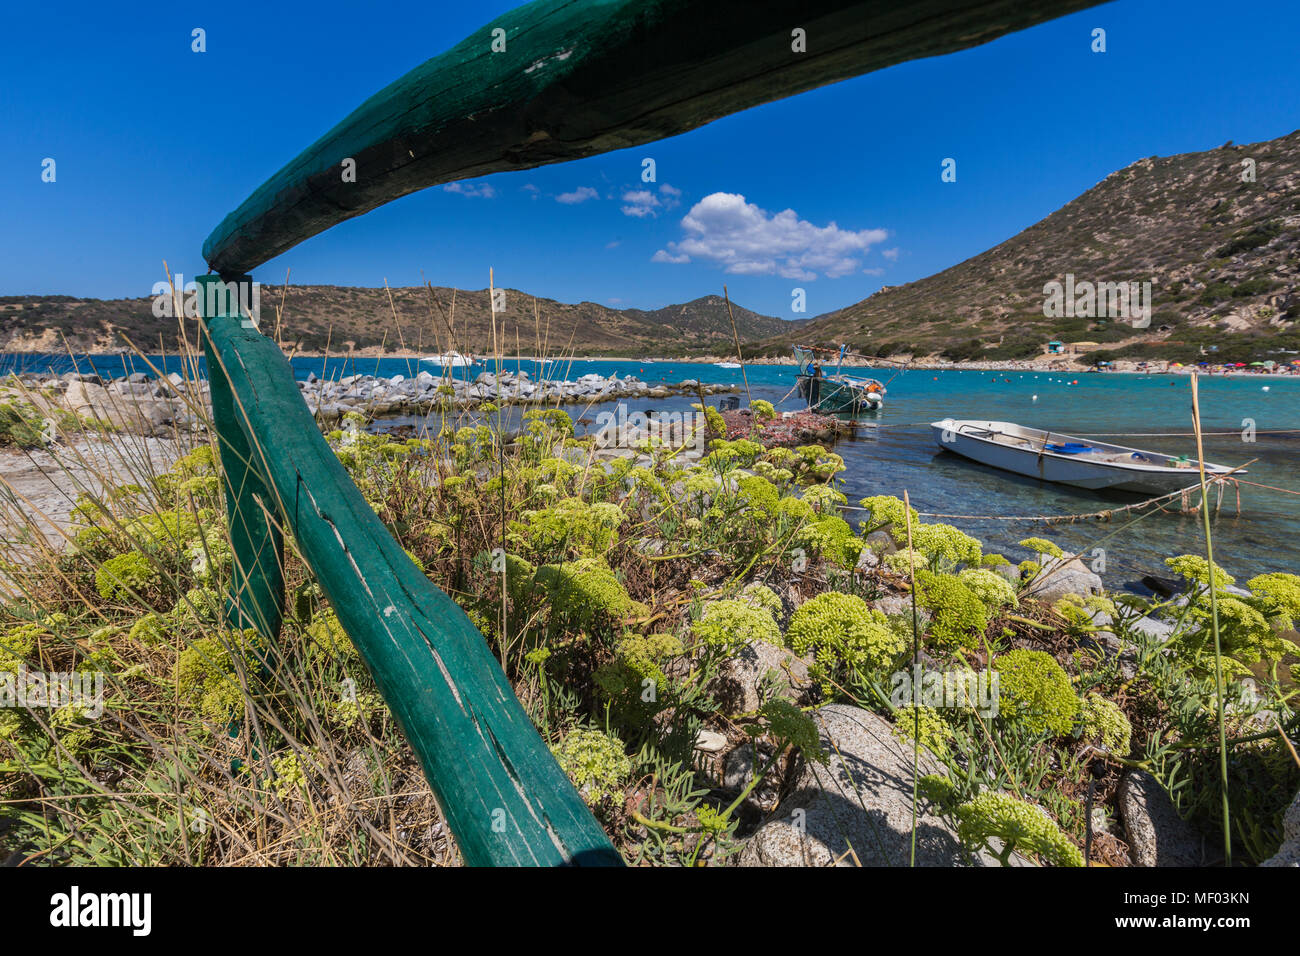 Mediterranean plants frame the fishing boats in the turquoise sea Punta Molentis Villasimius Cagliari Sardinia Italy Europe - Stock Image